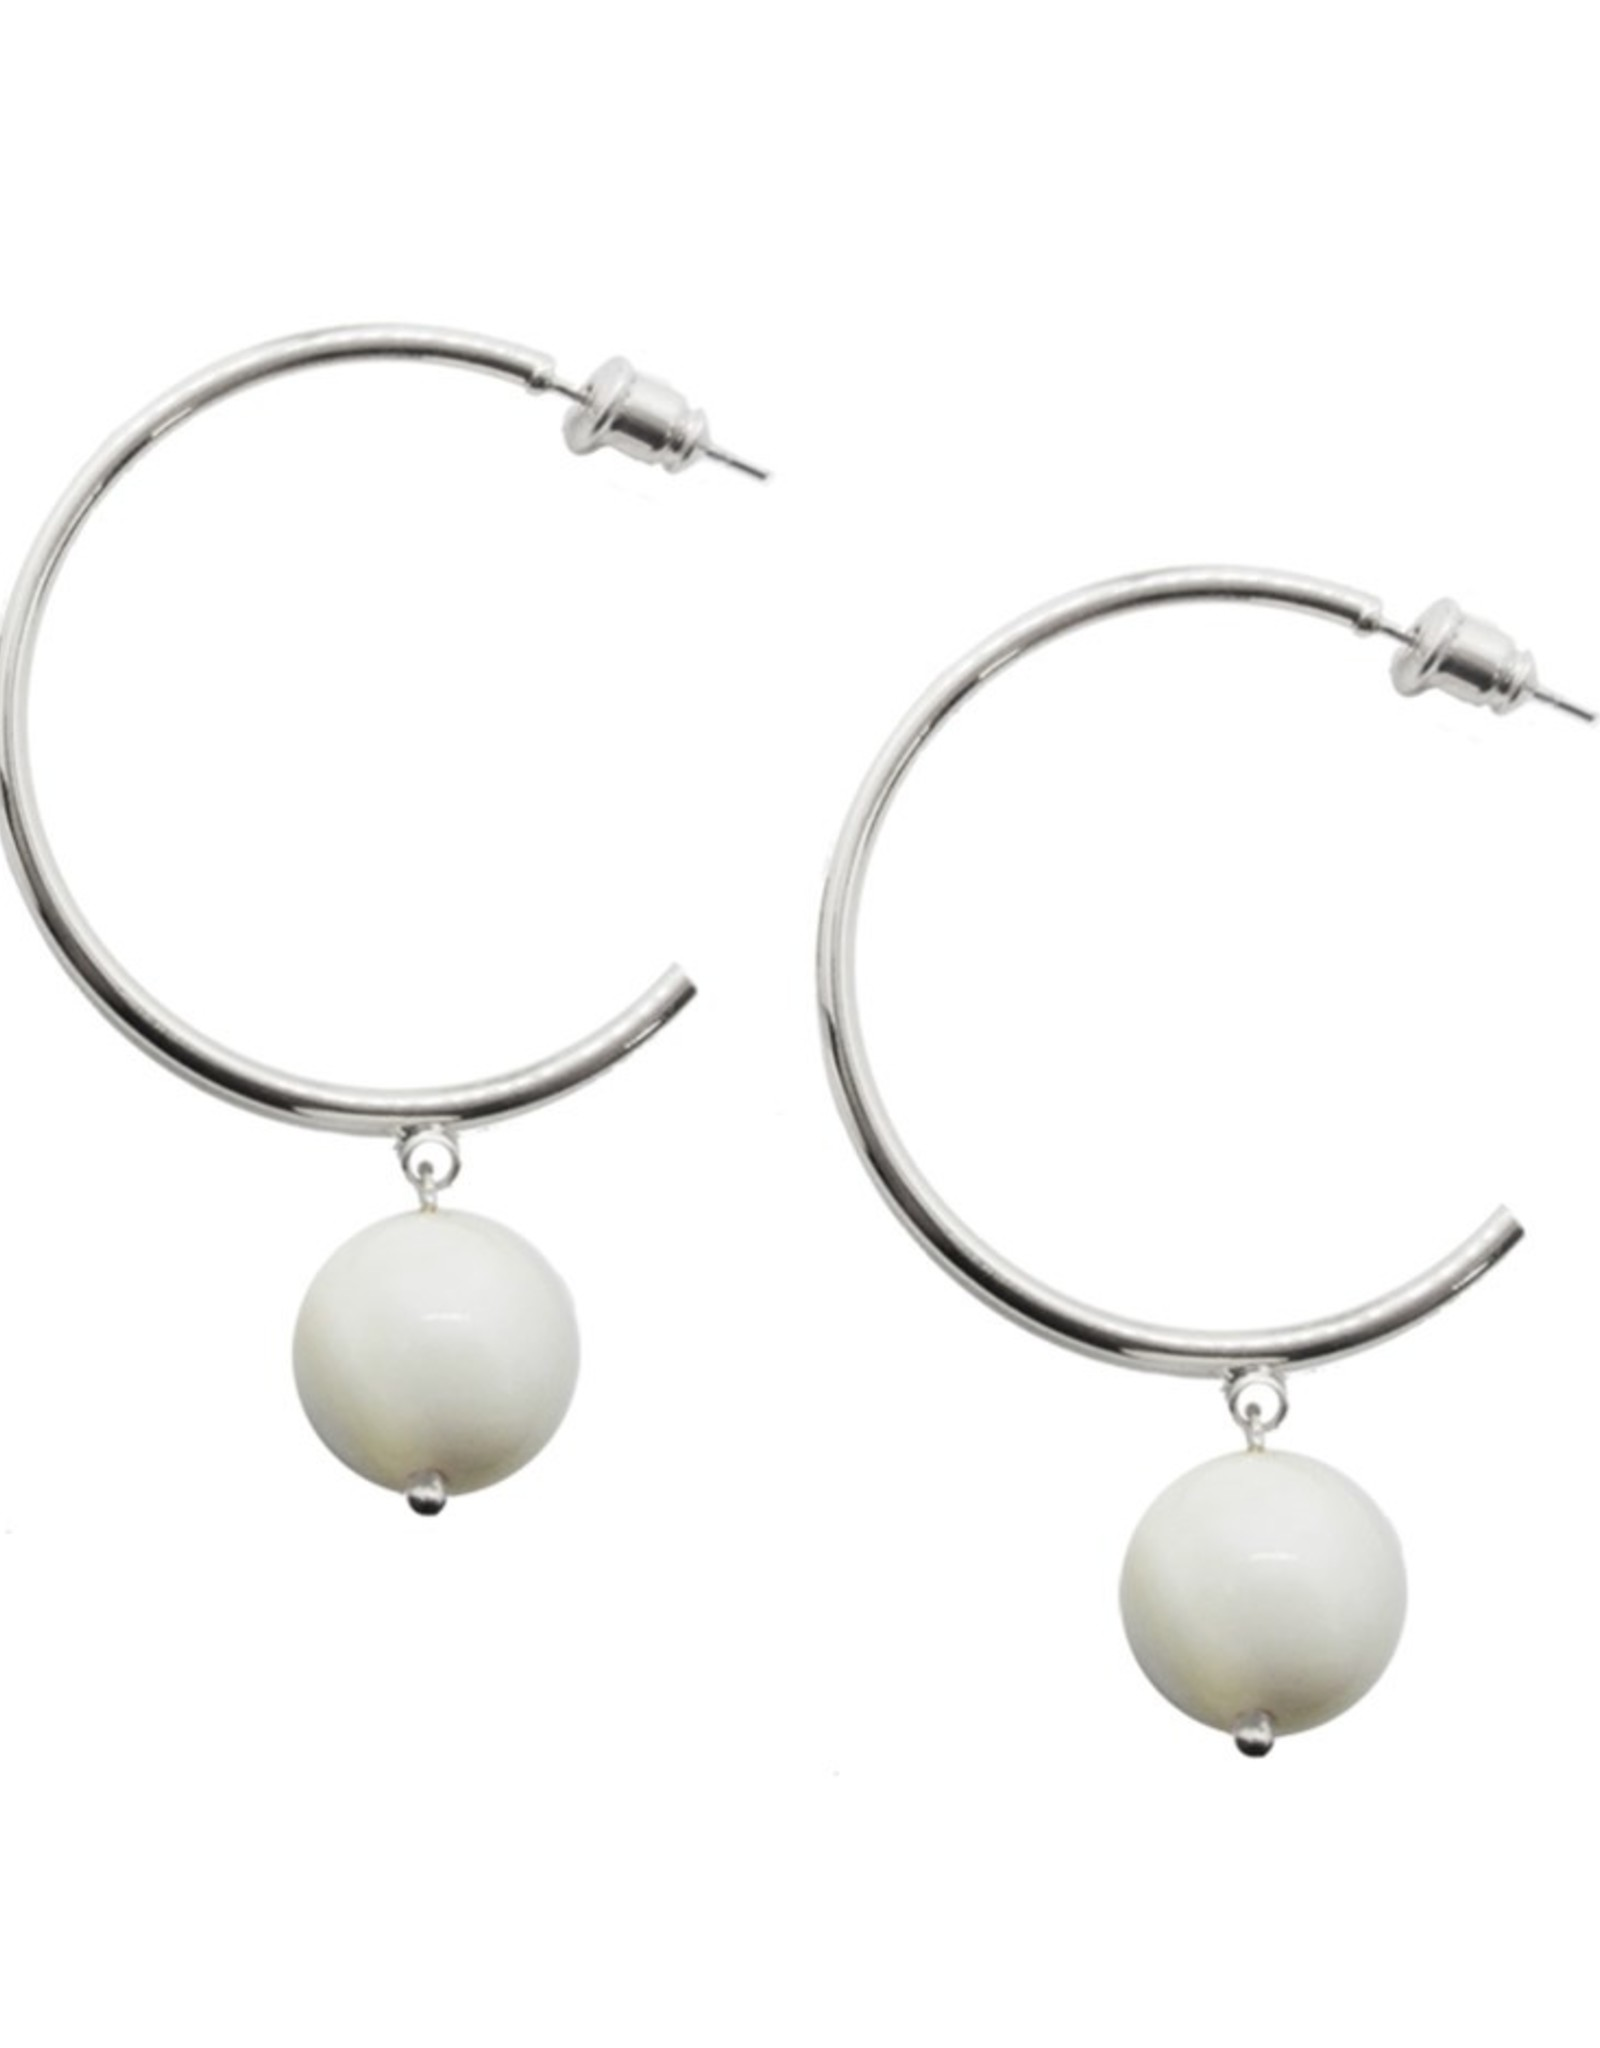 White & Silver Hoop Earrings